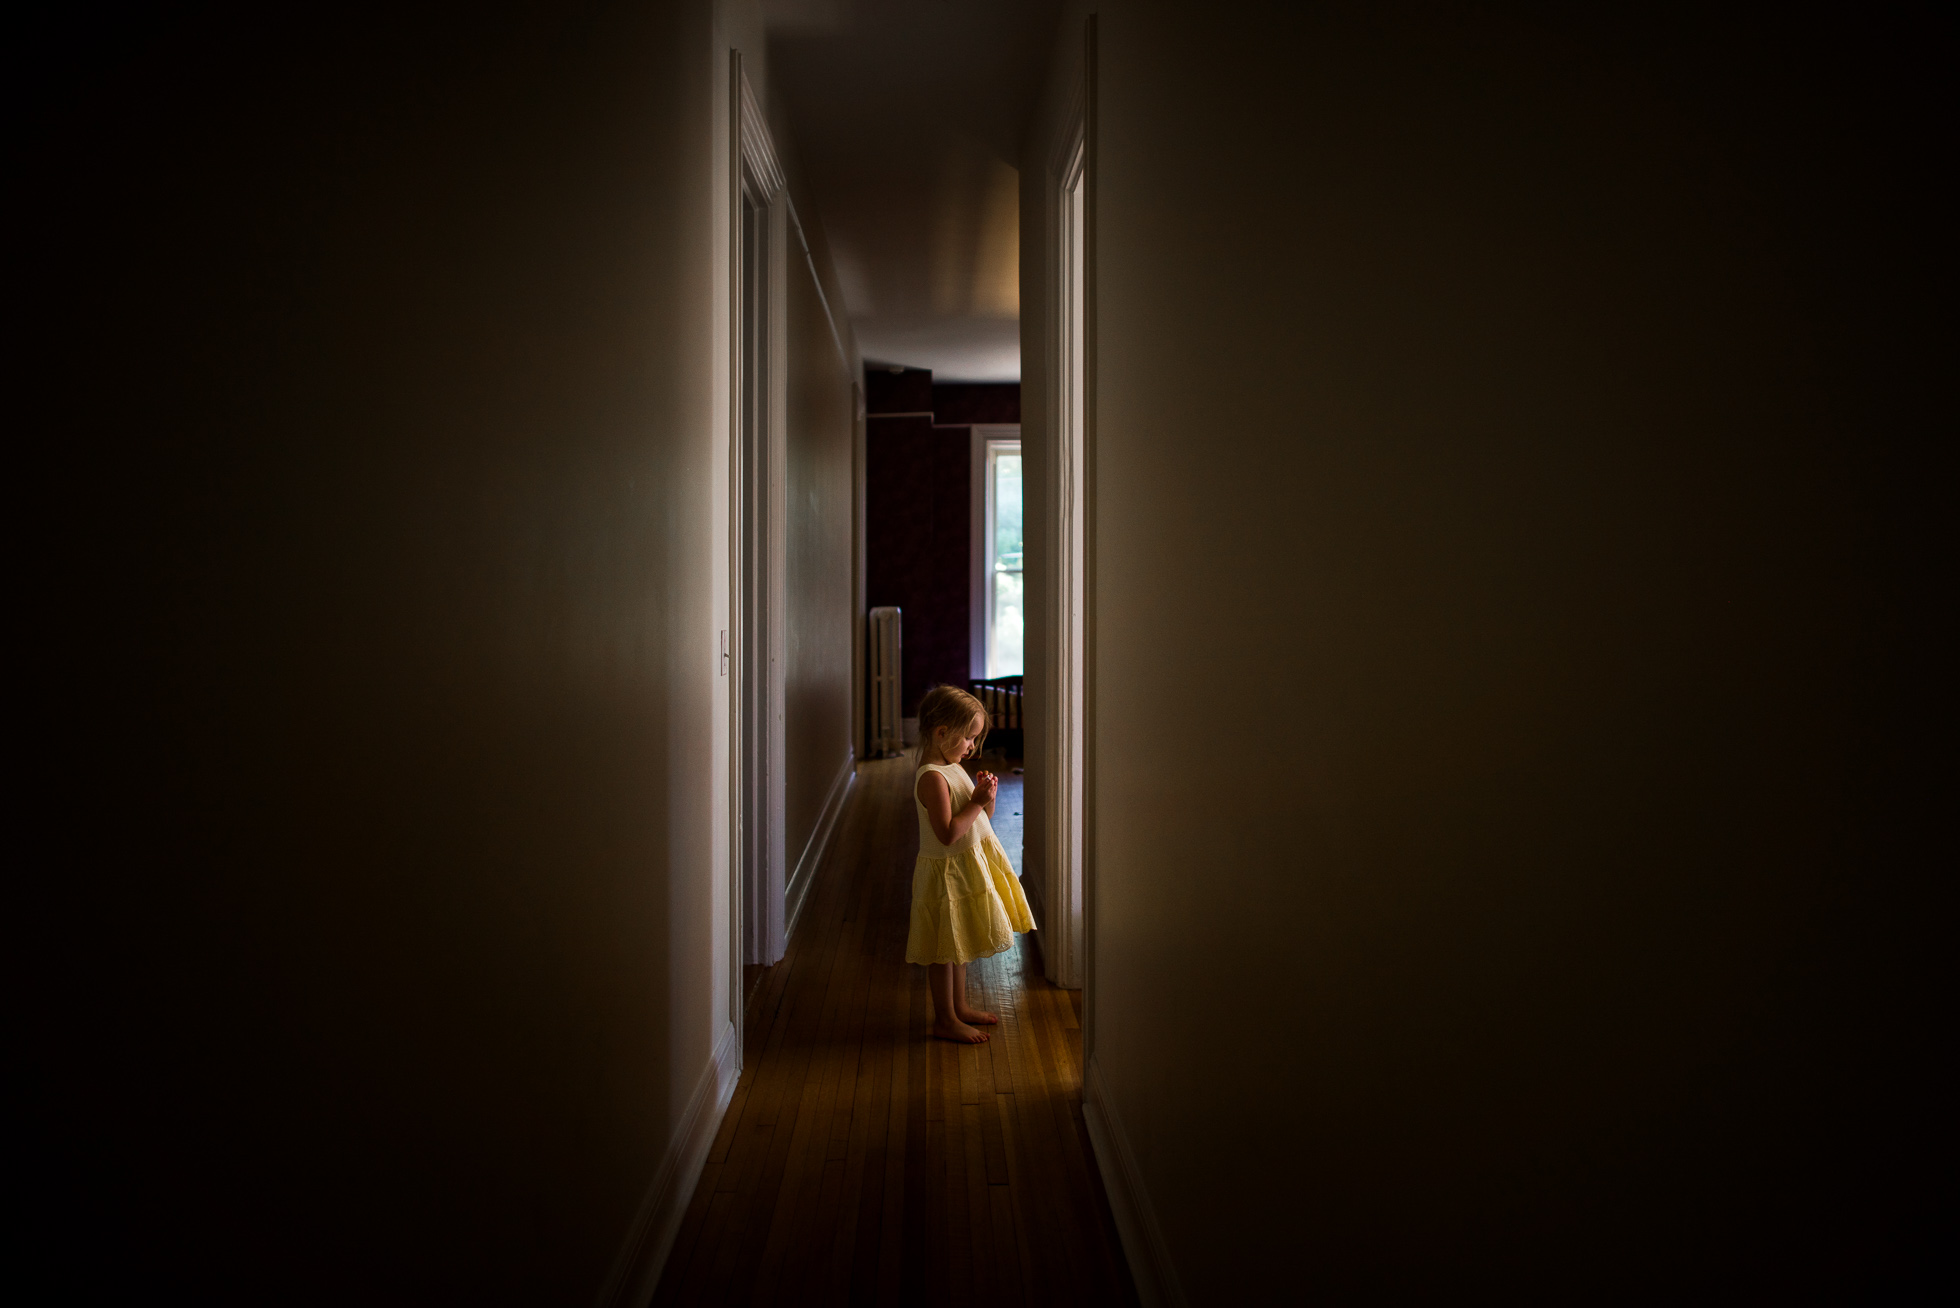 Girl-in-Yellow-Dress-Framed-by-Tall-Hallway-and-Standing-in-Beautiful-Natural-Sidelighting-by-Sarah-Wilkerson-7780